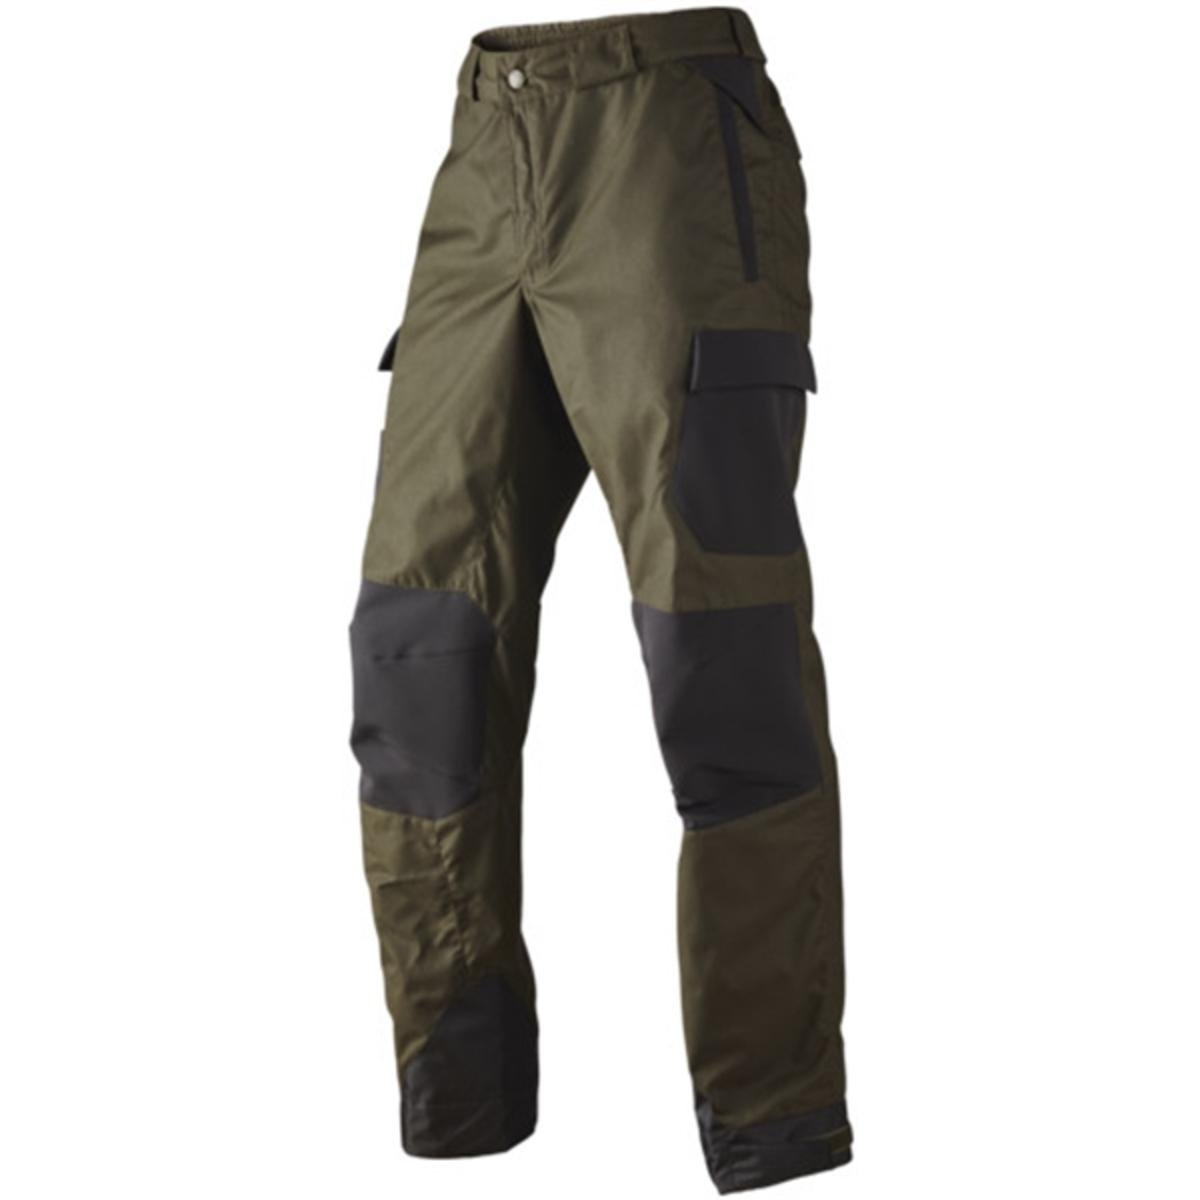 Seeland Prevail Basic Hose Grizzly brown Jagdhose